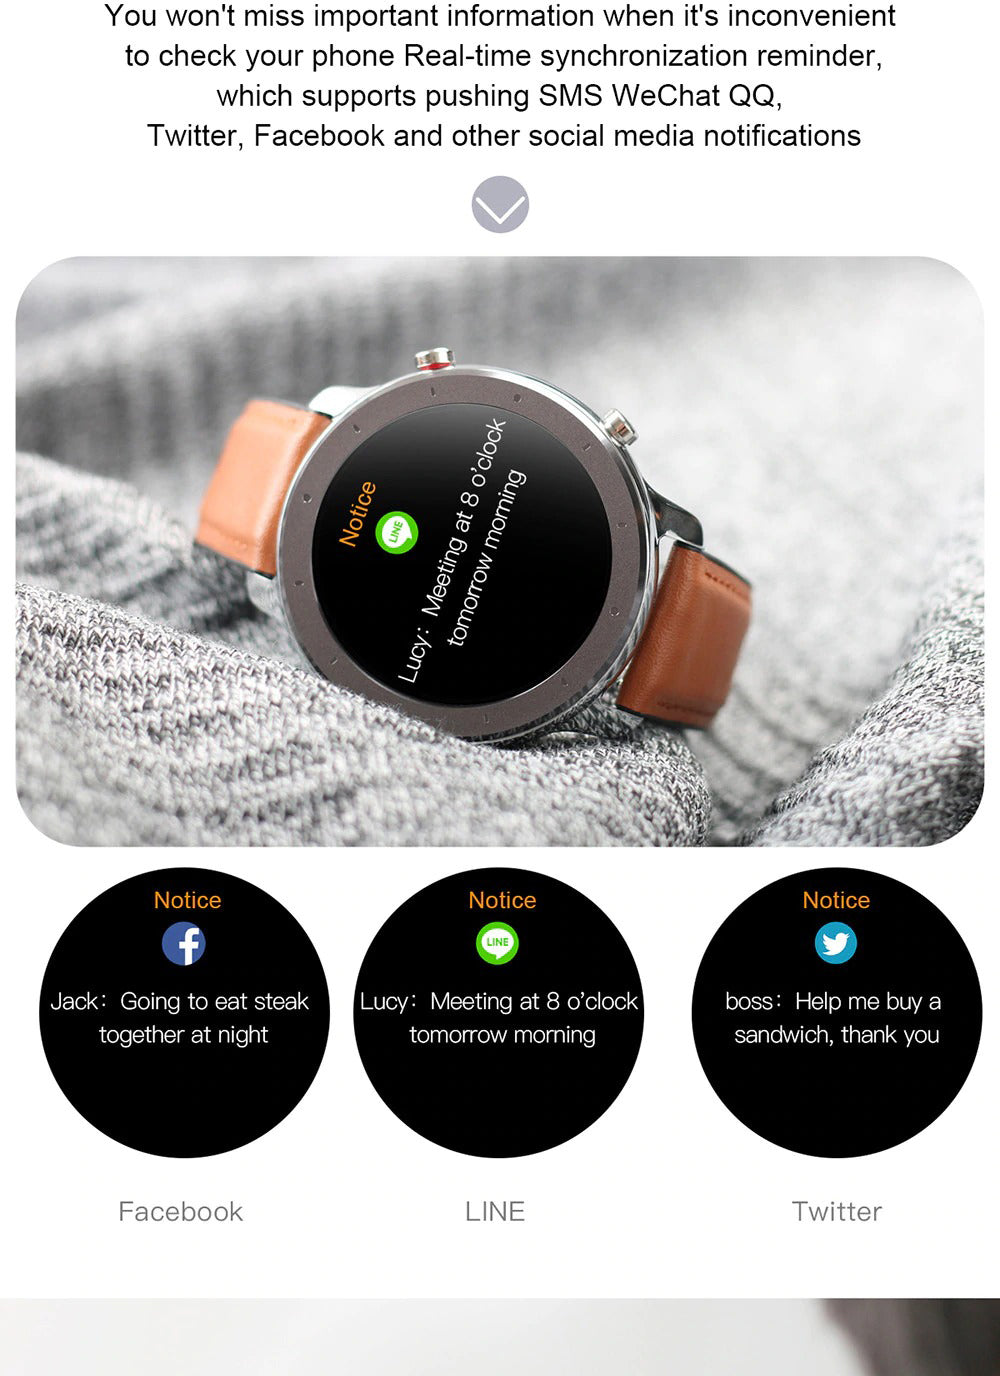 X9 Beretta Smart Watch SMS WeChat Facebook Twitter Social Media Notifications